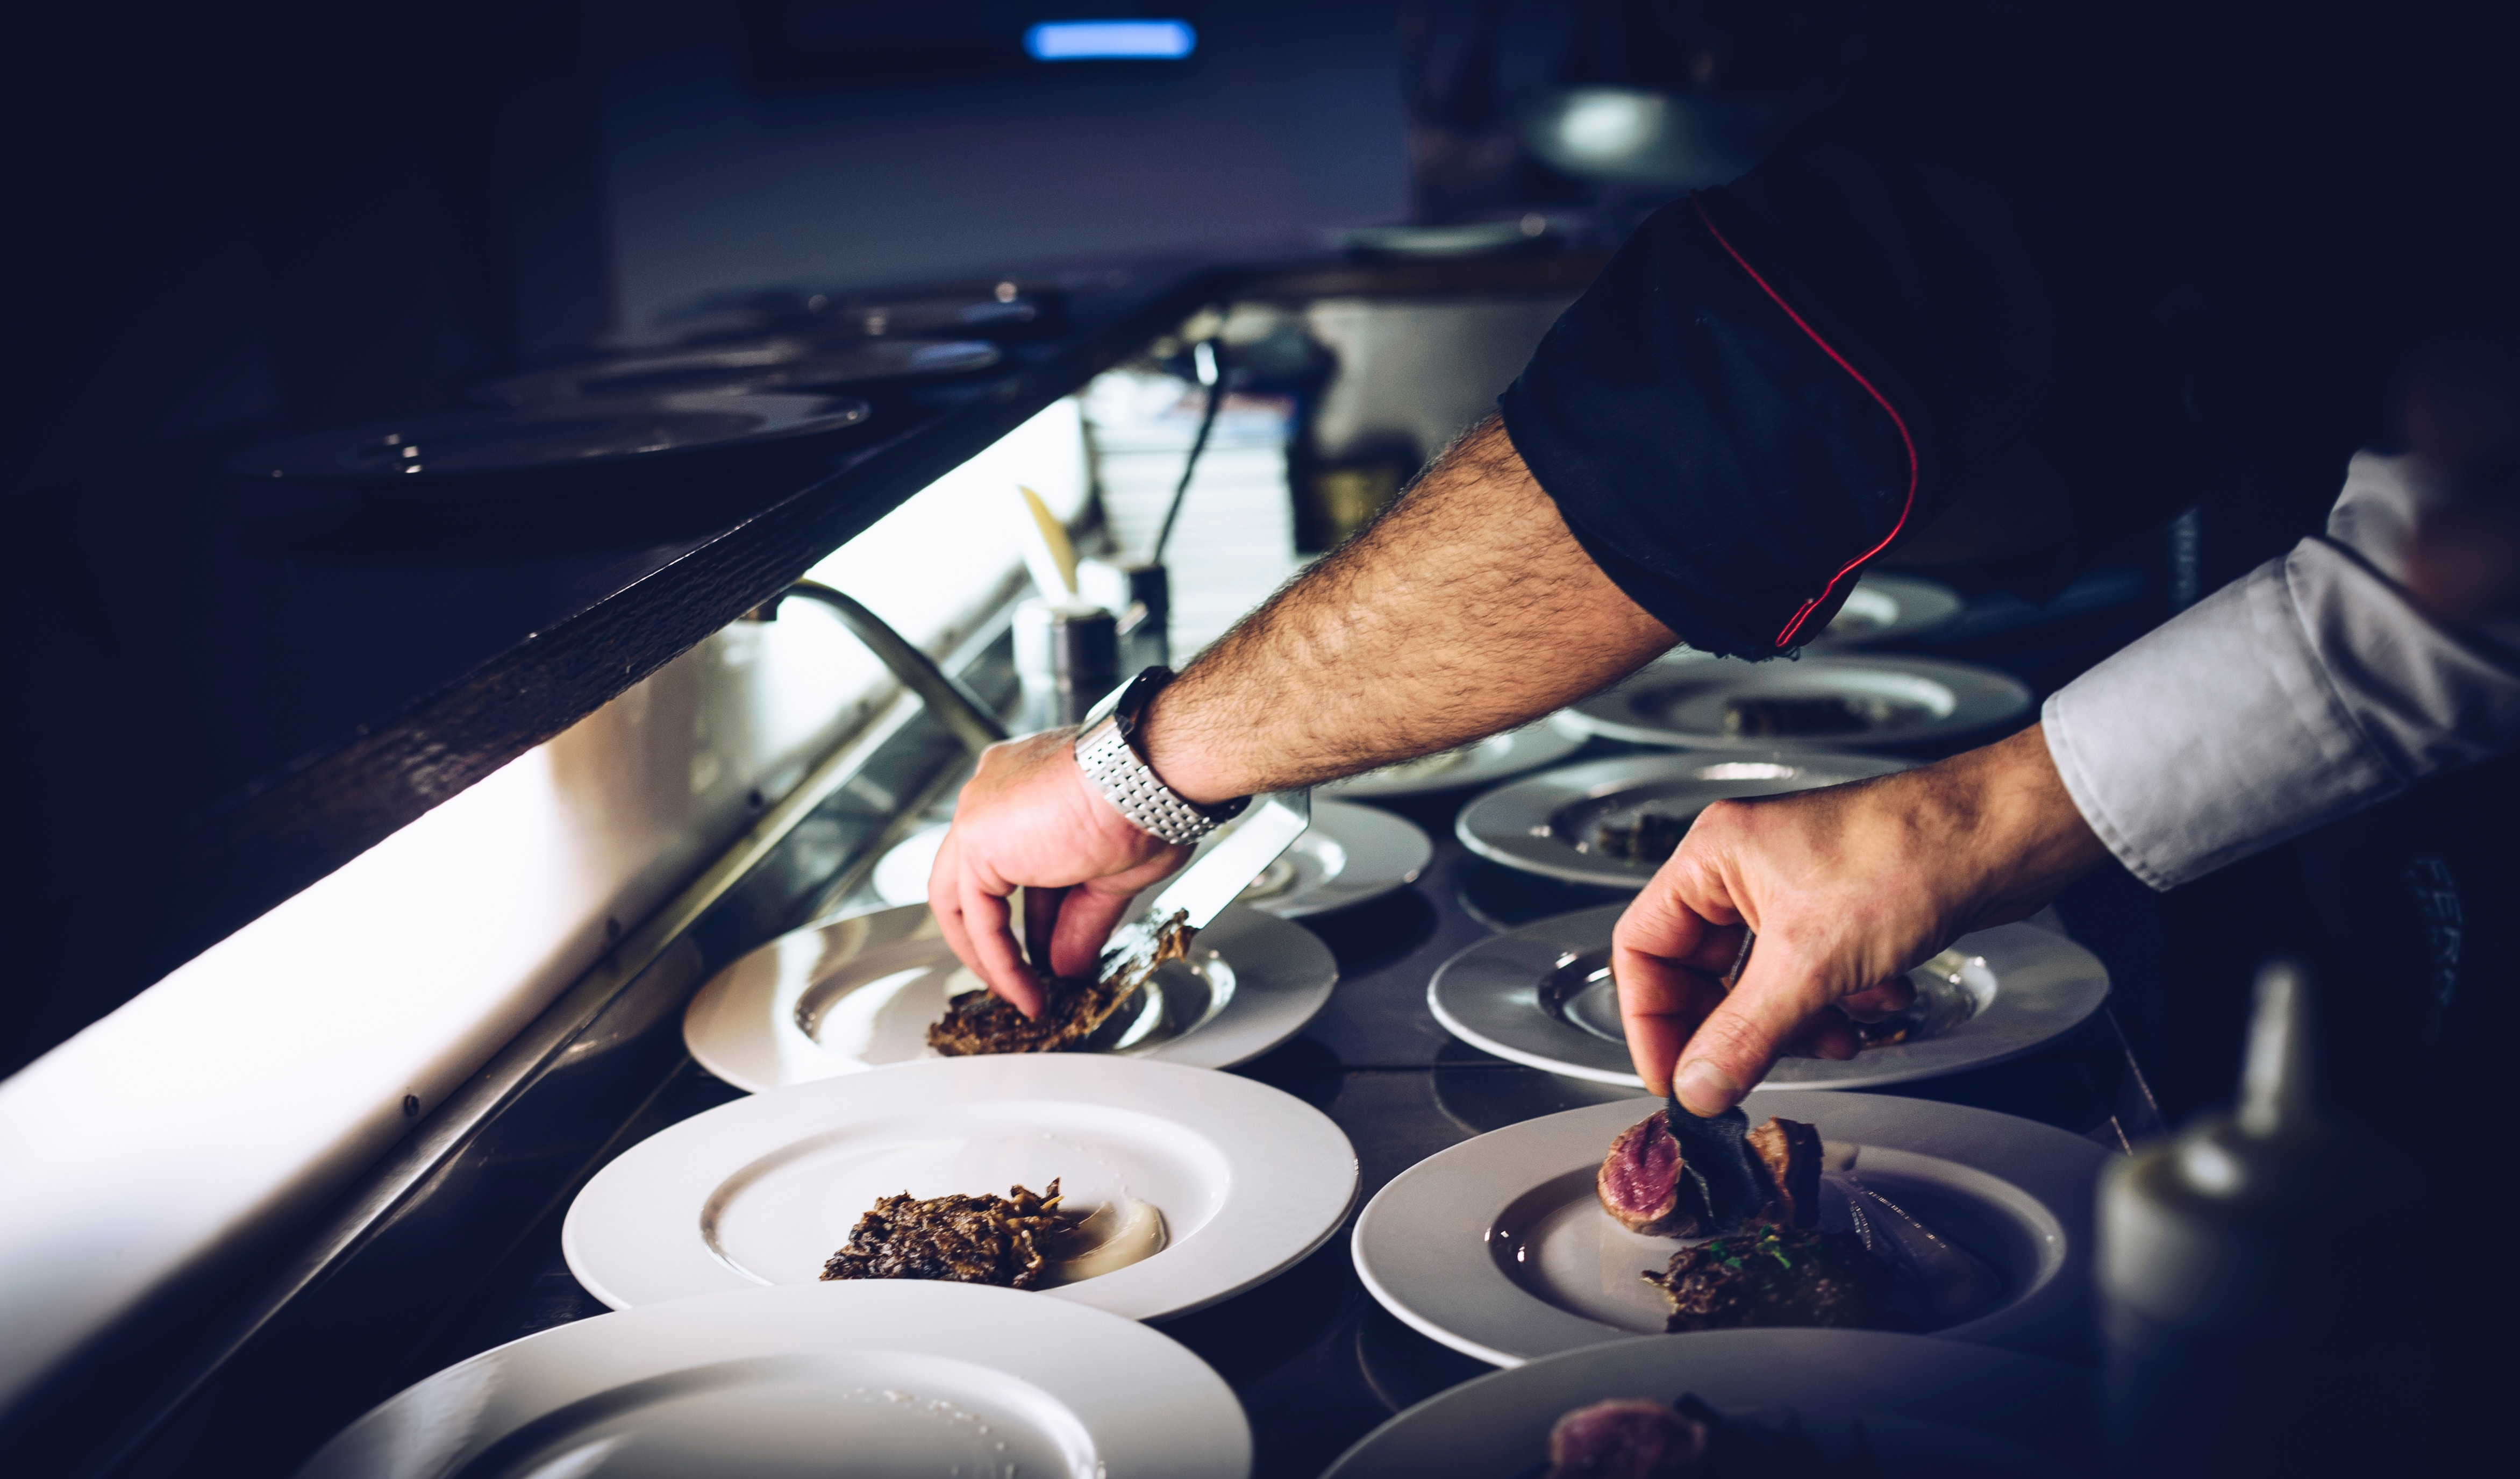 4 Ways to Prepare Your Restaurant for Health Inspections